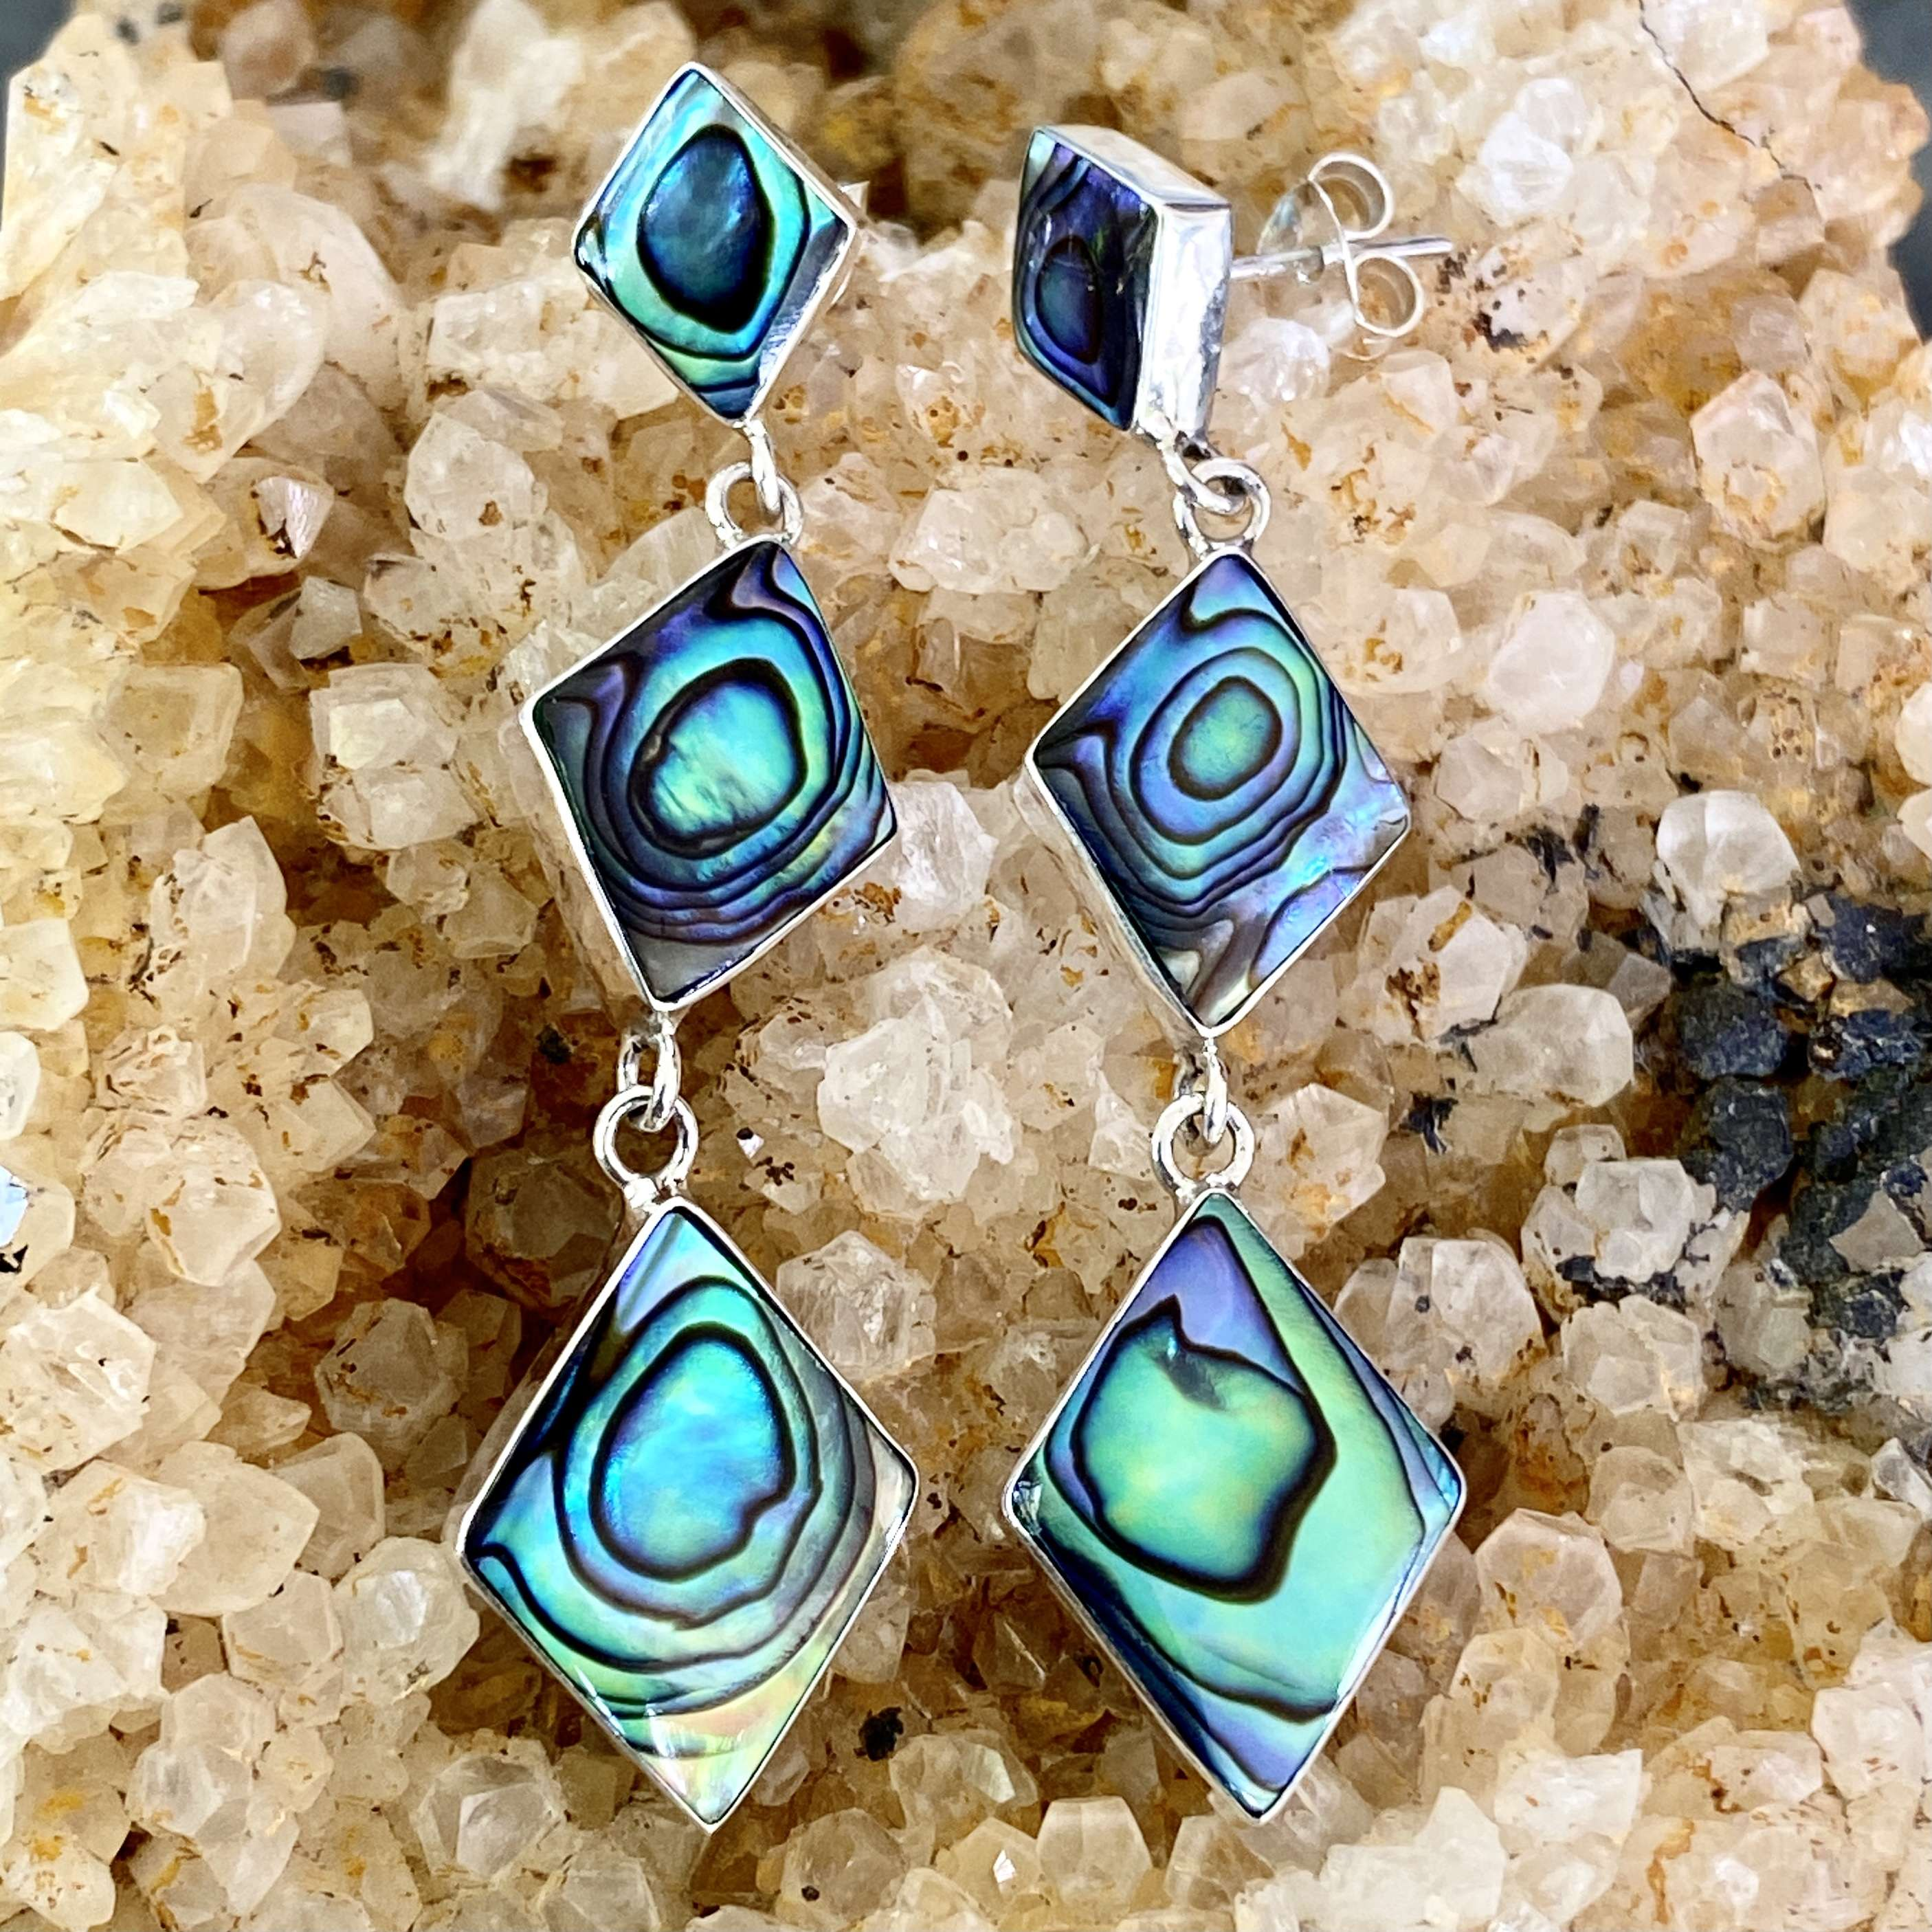 (HANDMADE BALI 925 STERLING SILVER EARRINGS WITH ABALONE)